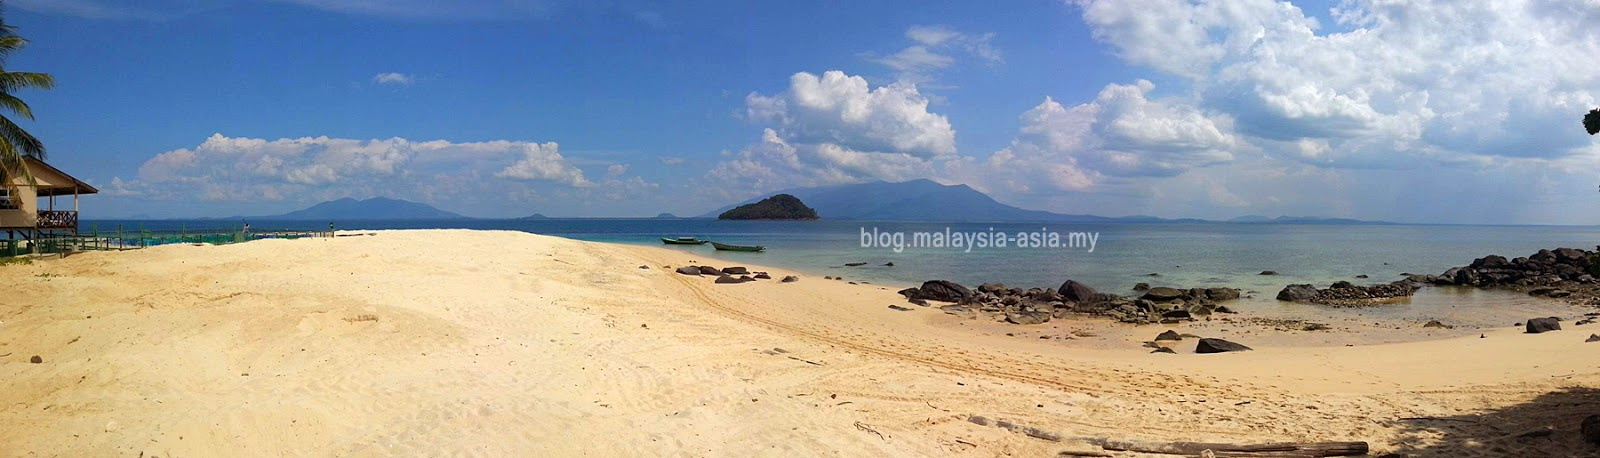 Talang Beach Panoramic View